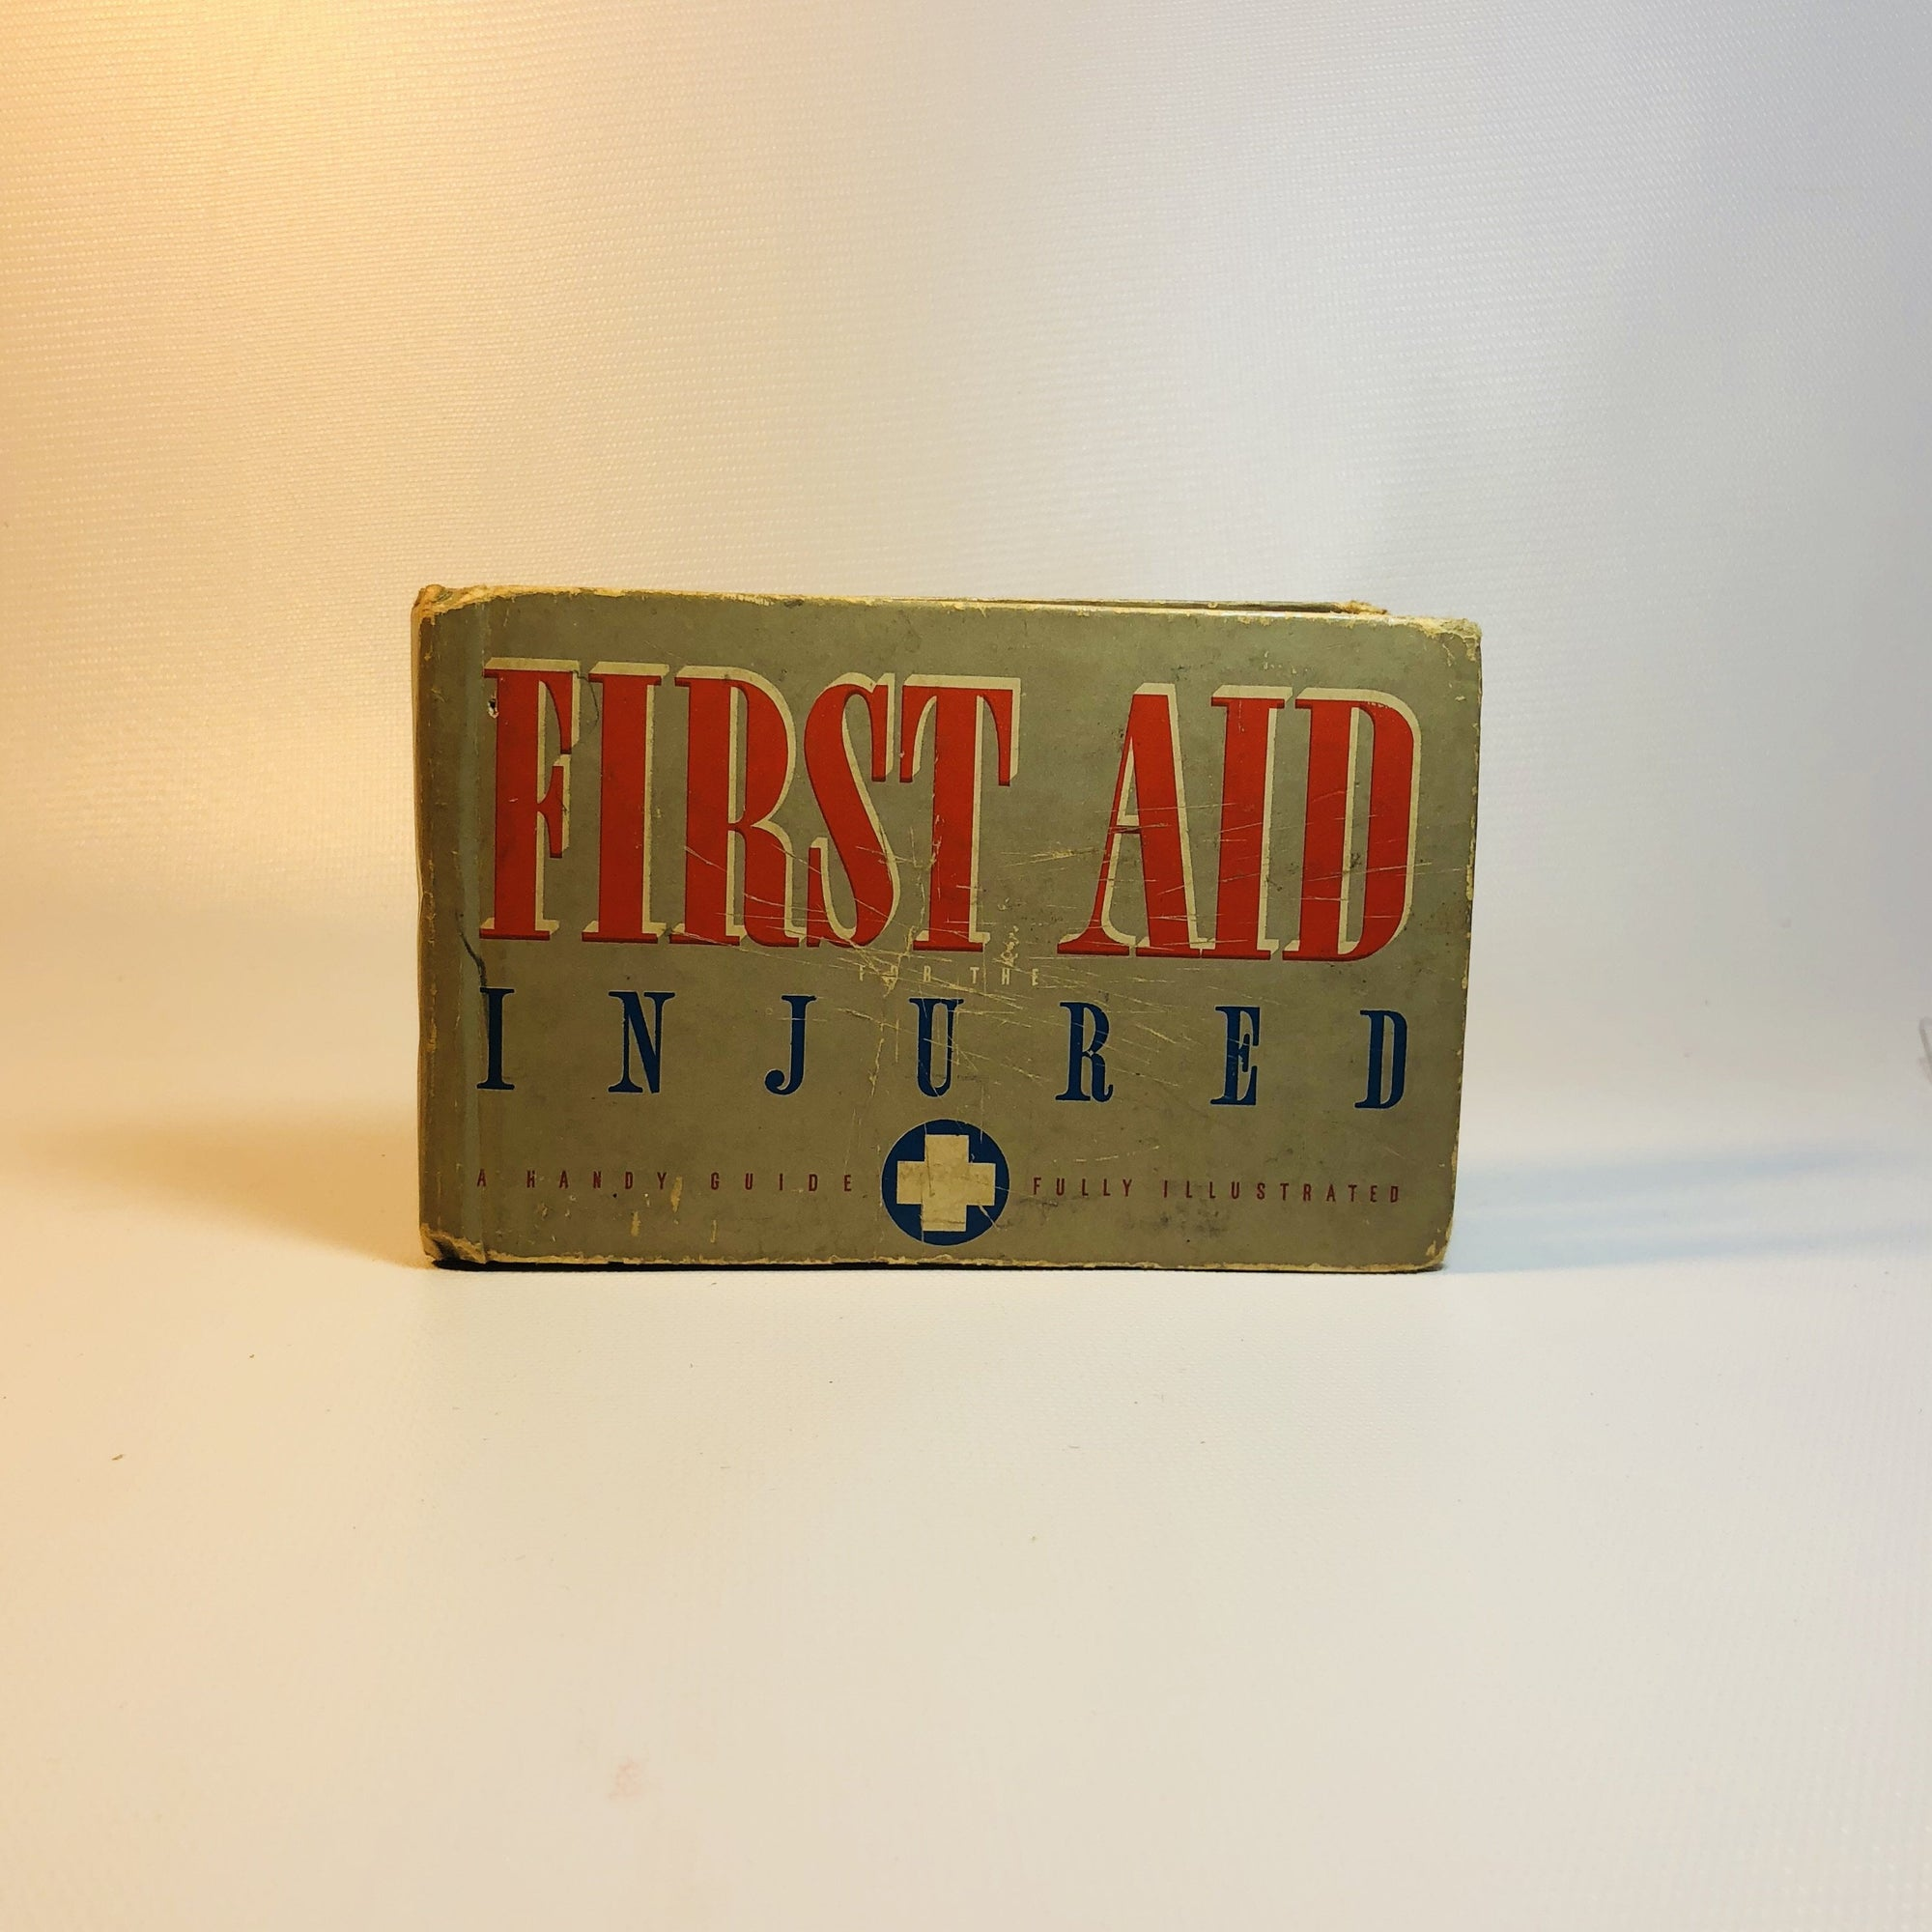 First Aid Injured A Handy Guide to First Aid by James Zwersch District Commander of First Aid Boy Scouts of America- 1937